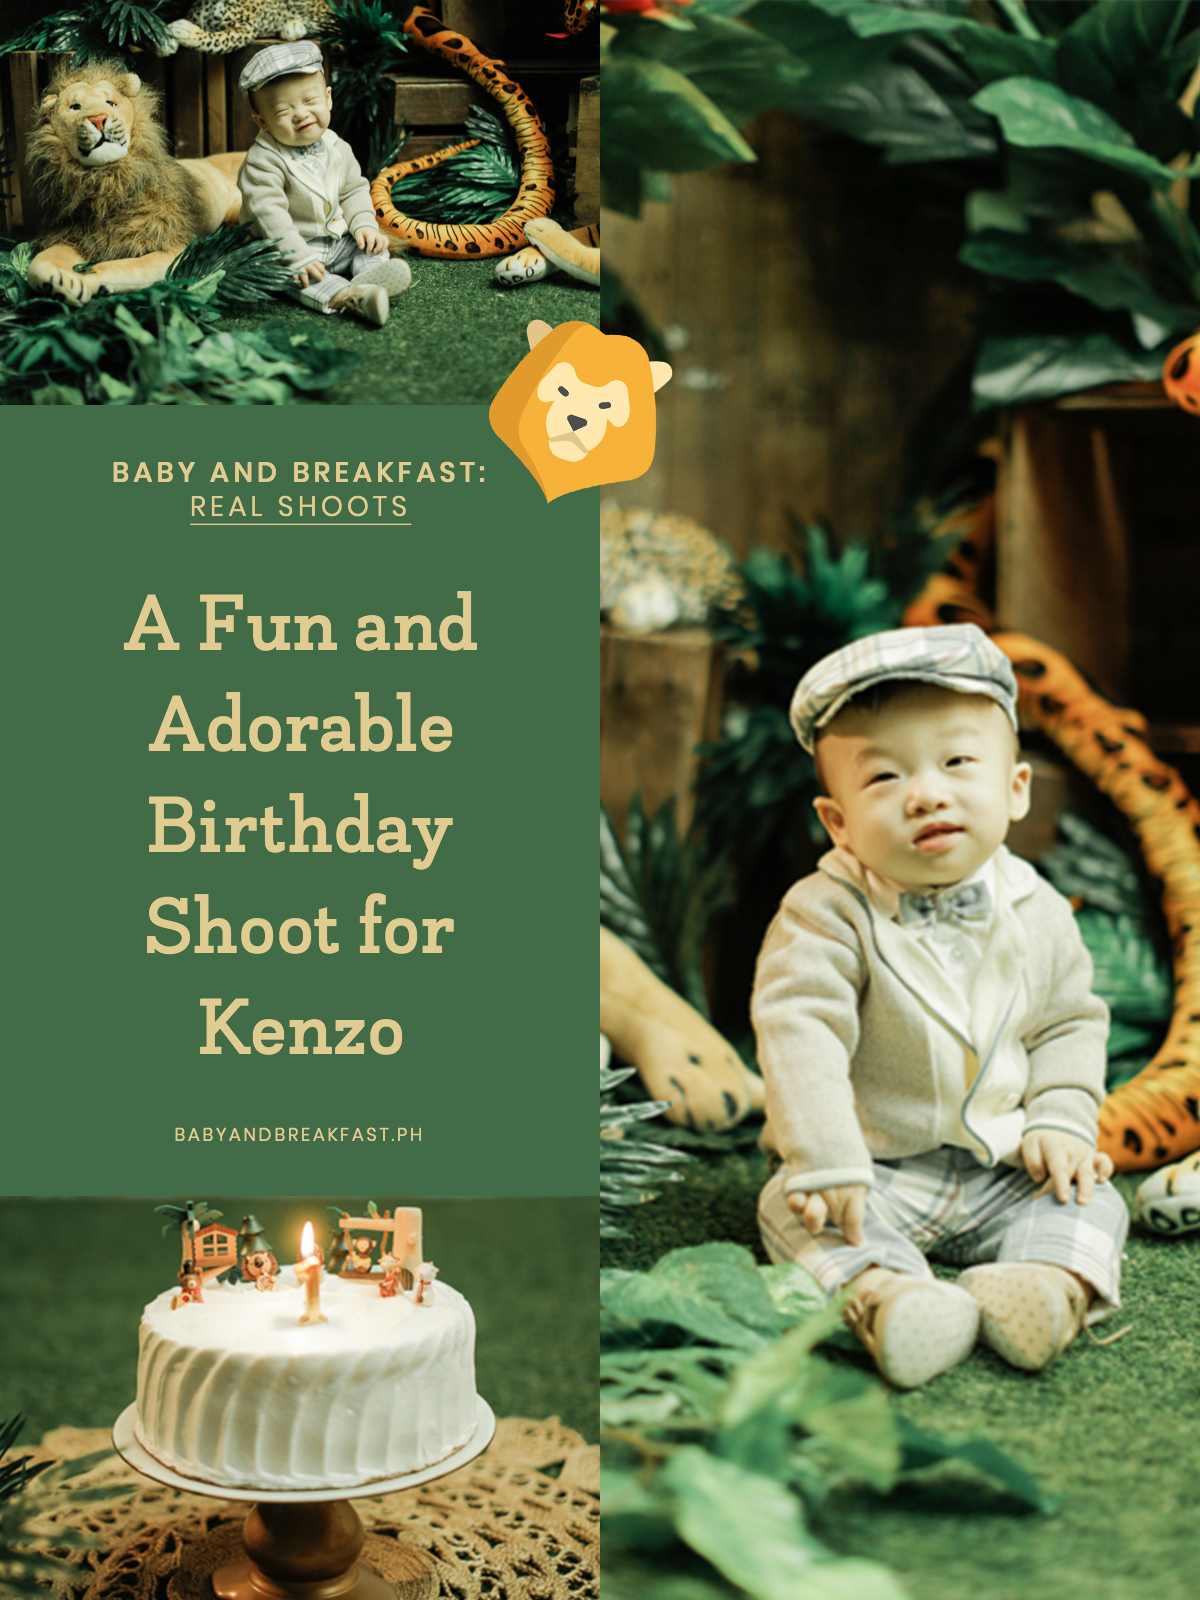 Baby and Breakfast: Real Shoots A Fun and Adorable Birthday Shoot for Kenzo